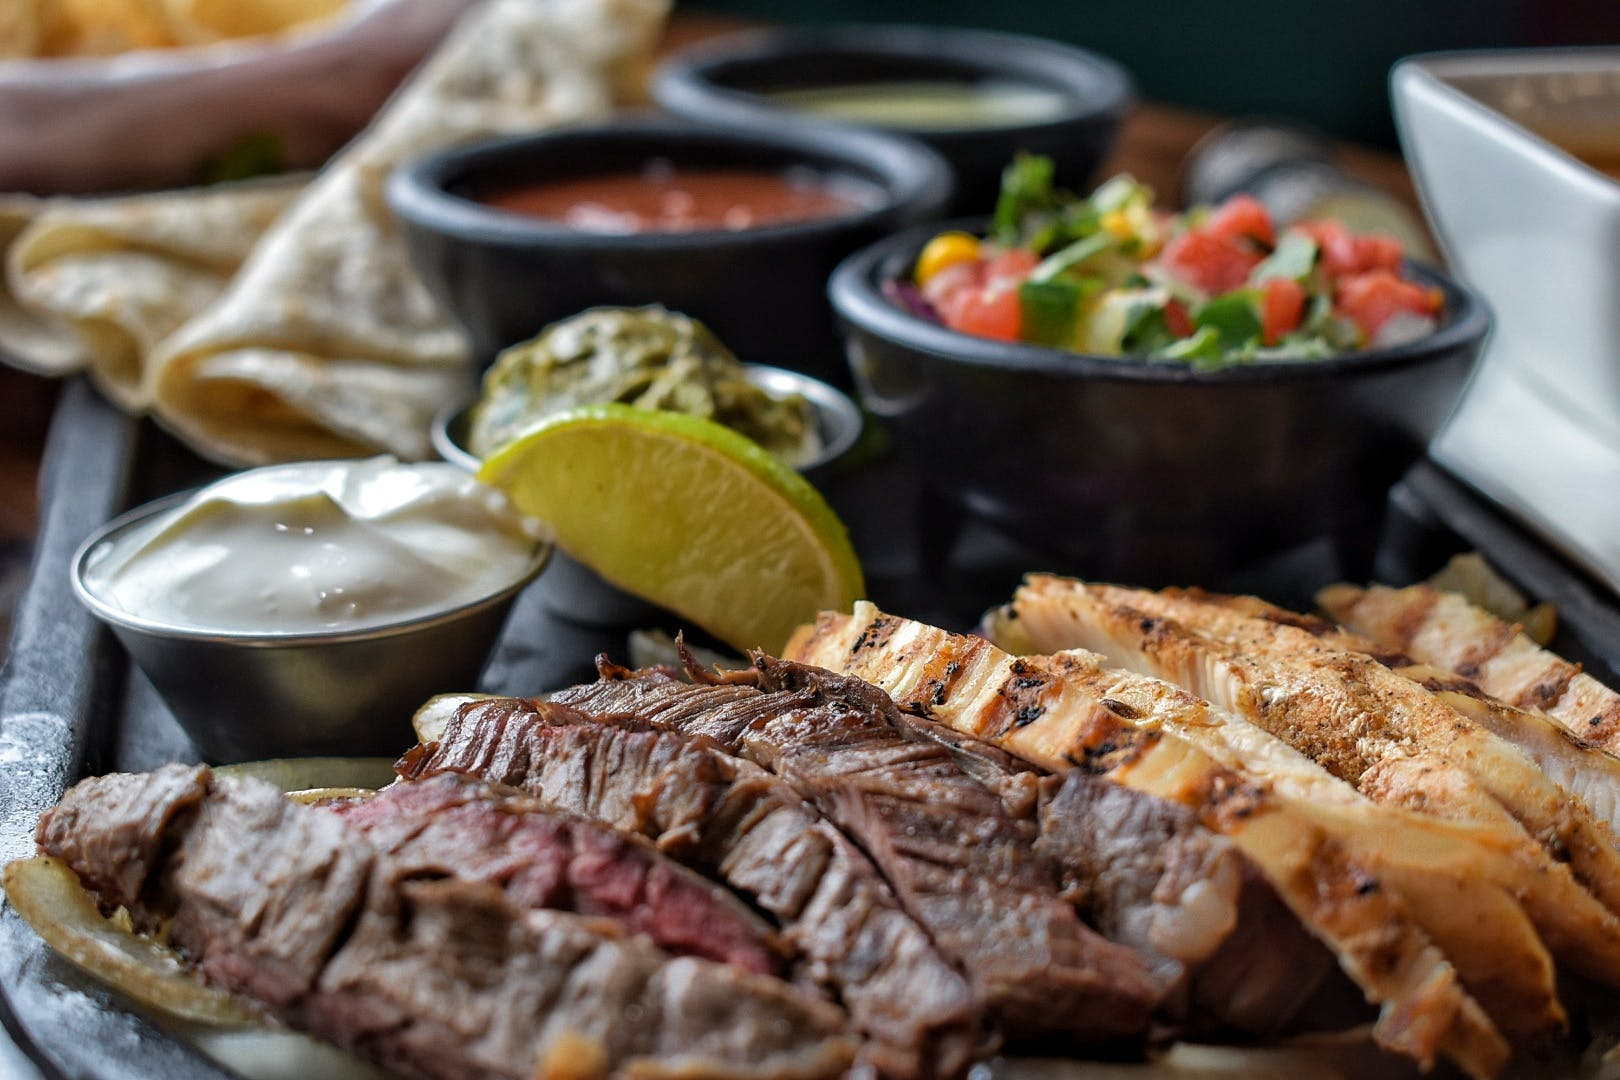 Aguirre S Tex Mex The Tex Mex Restaurant In Tomball Where